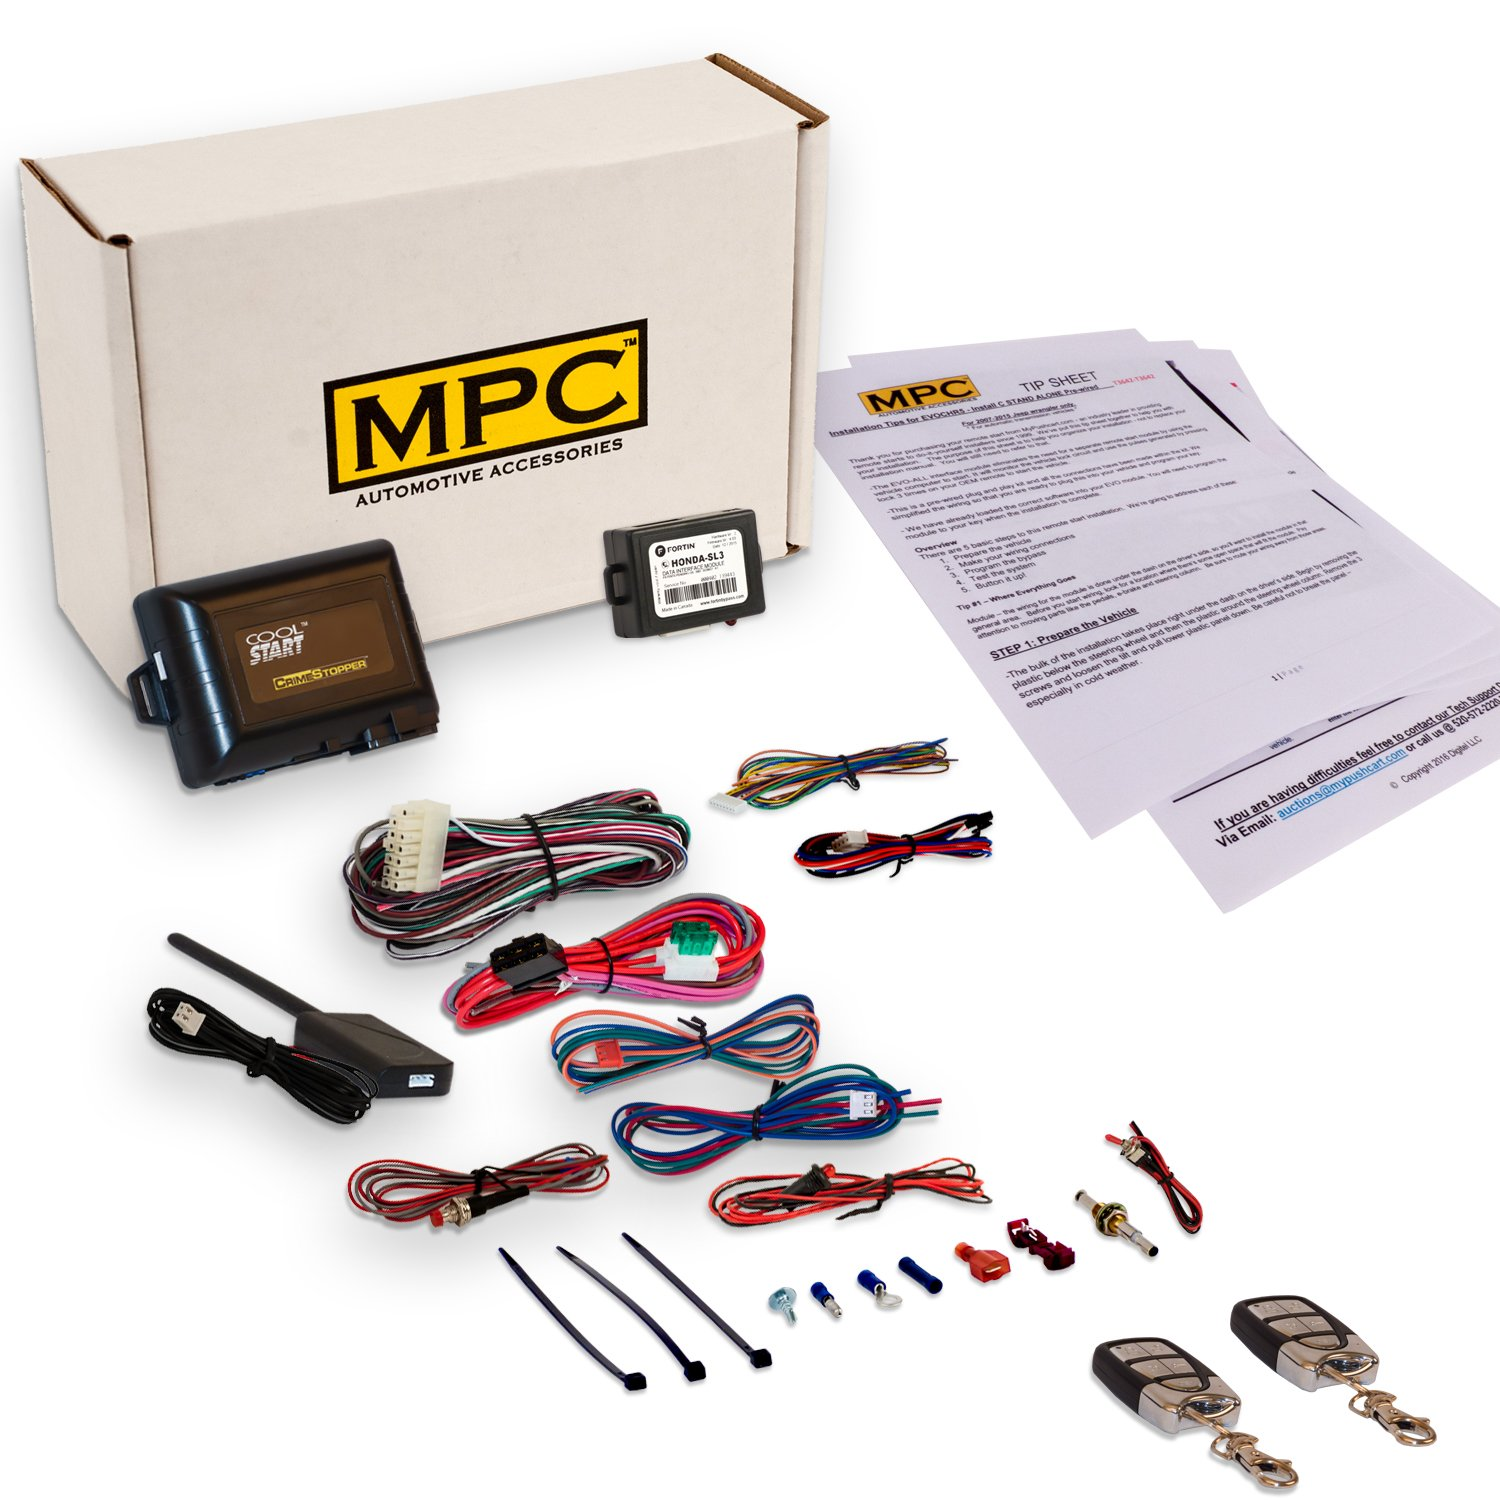 Complete Remote Start Kit With Keyless Entry For 2003-2008 Honda Pilot - Includes (2) 4 Button Remotes